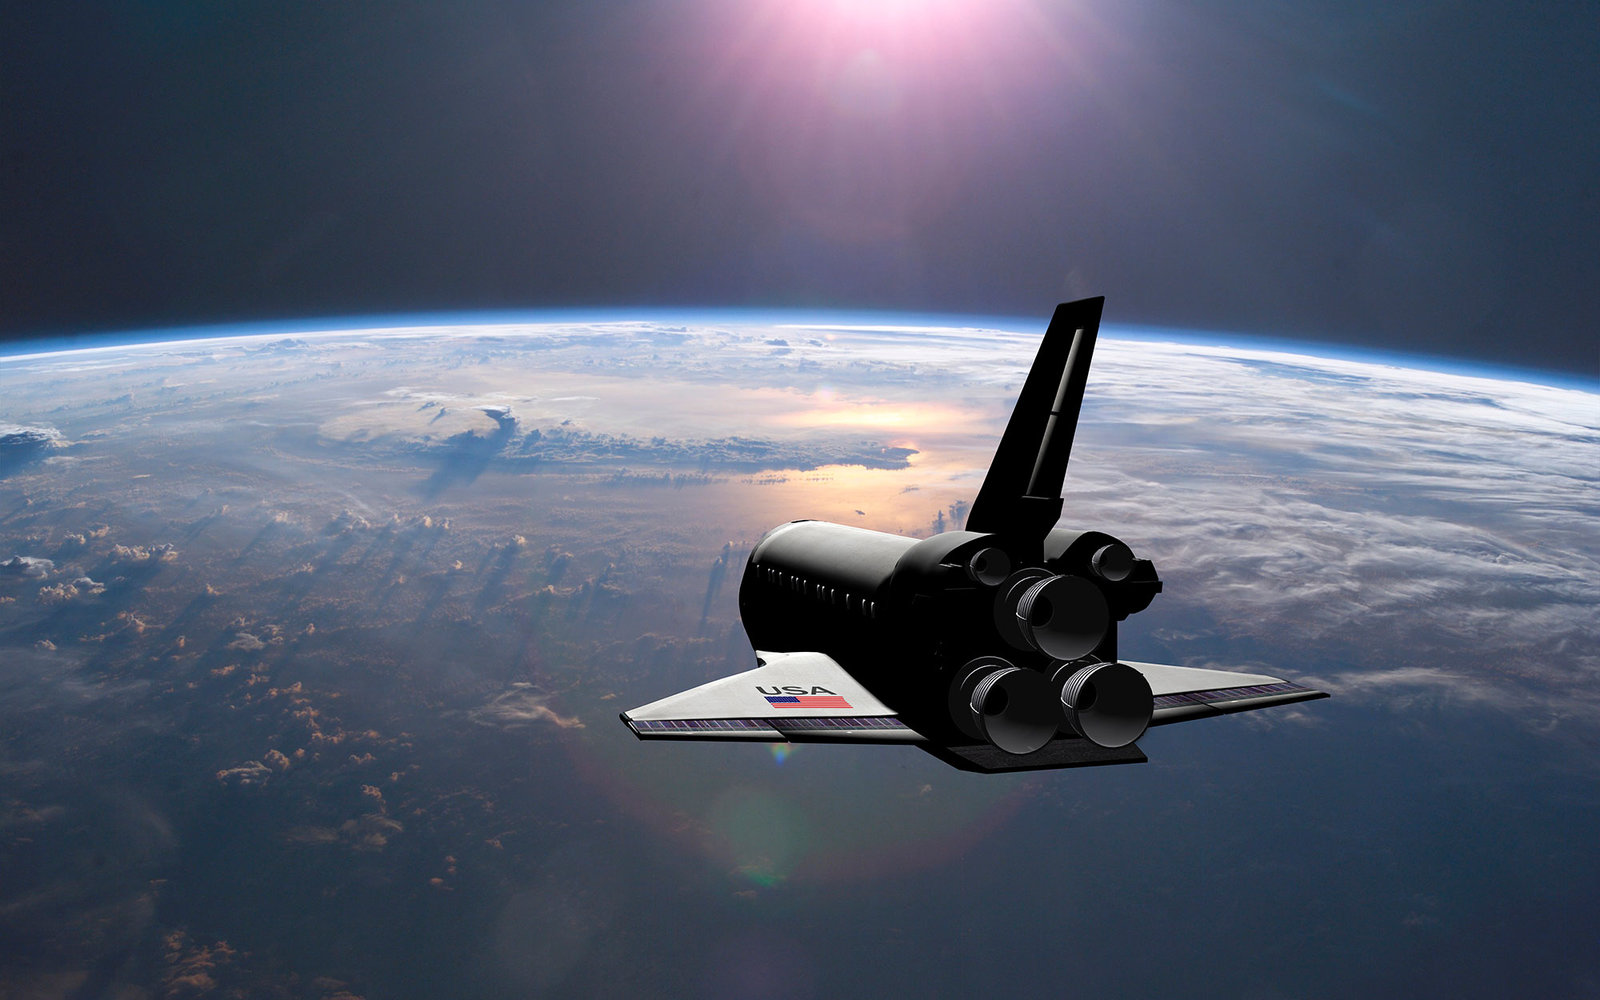 space shuttle trip around earth - photo #9